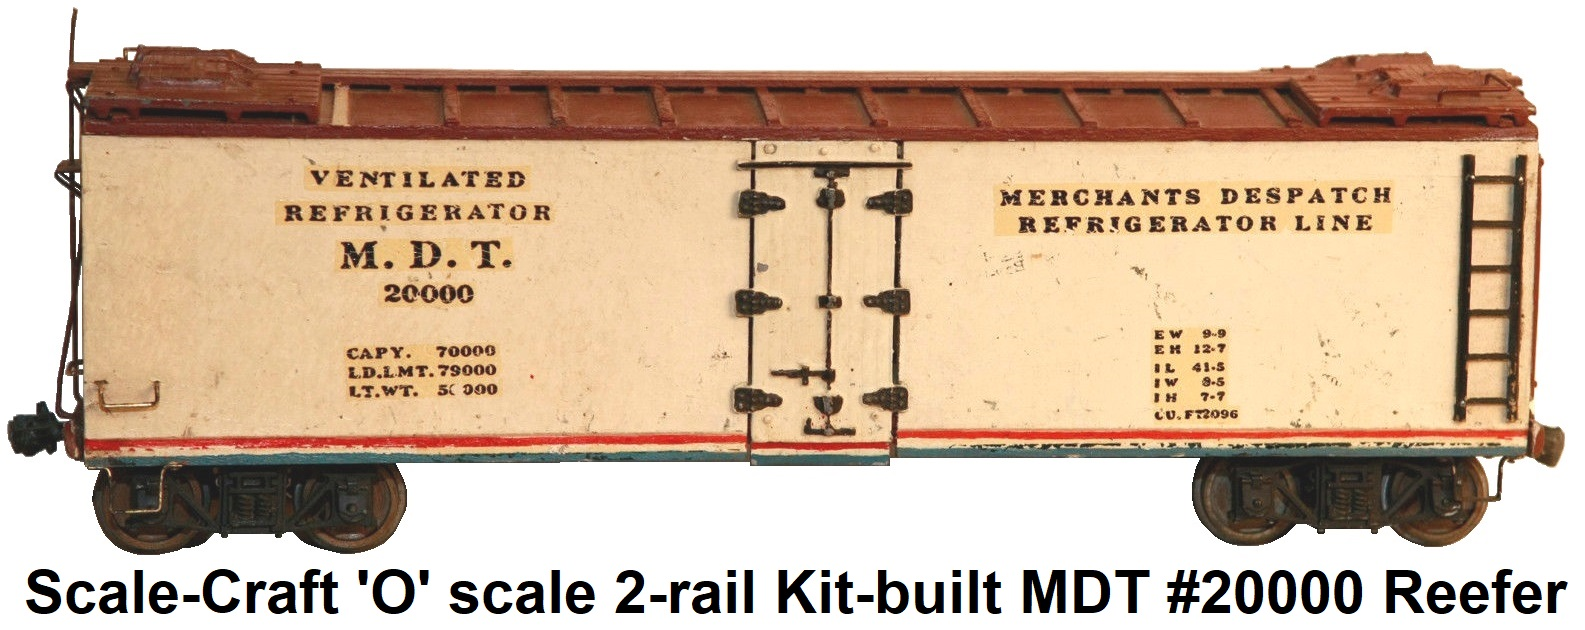 Scale-Craft 'O' scale Kit-built MDT #20000 Reefer 2-rail